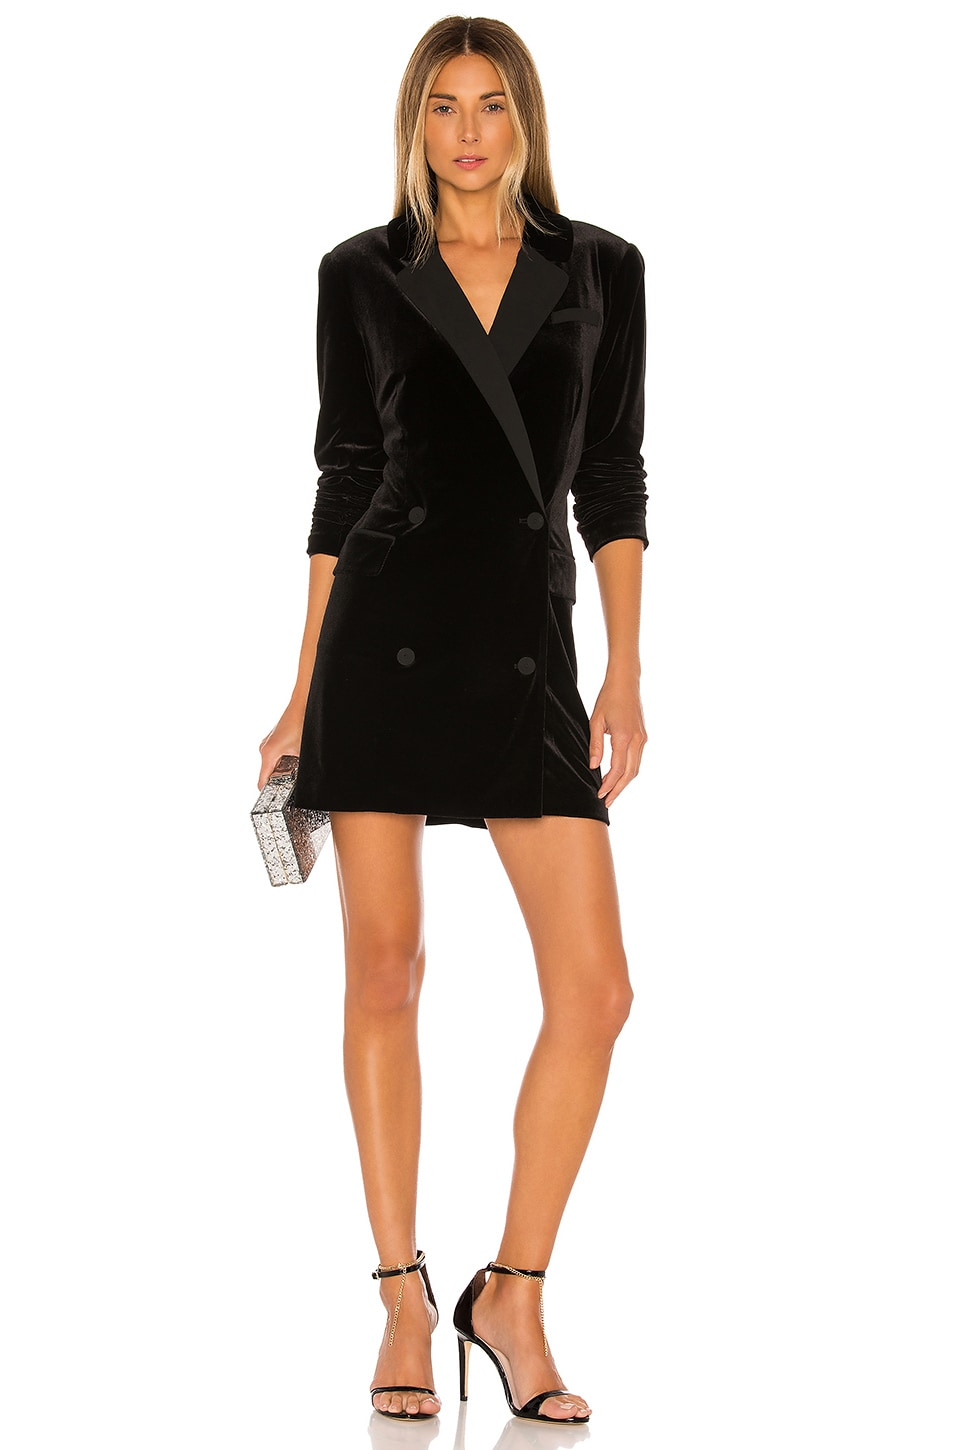 Ruched Velvet Blazer Dress             1. STATE                                                                                                                                         Sale price:                                                                       CA$ 141.86                                                                  Previous price:                                                                       CA$ 201.31 13